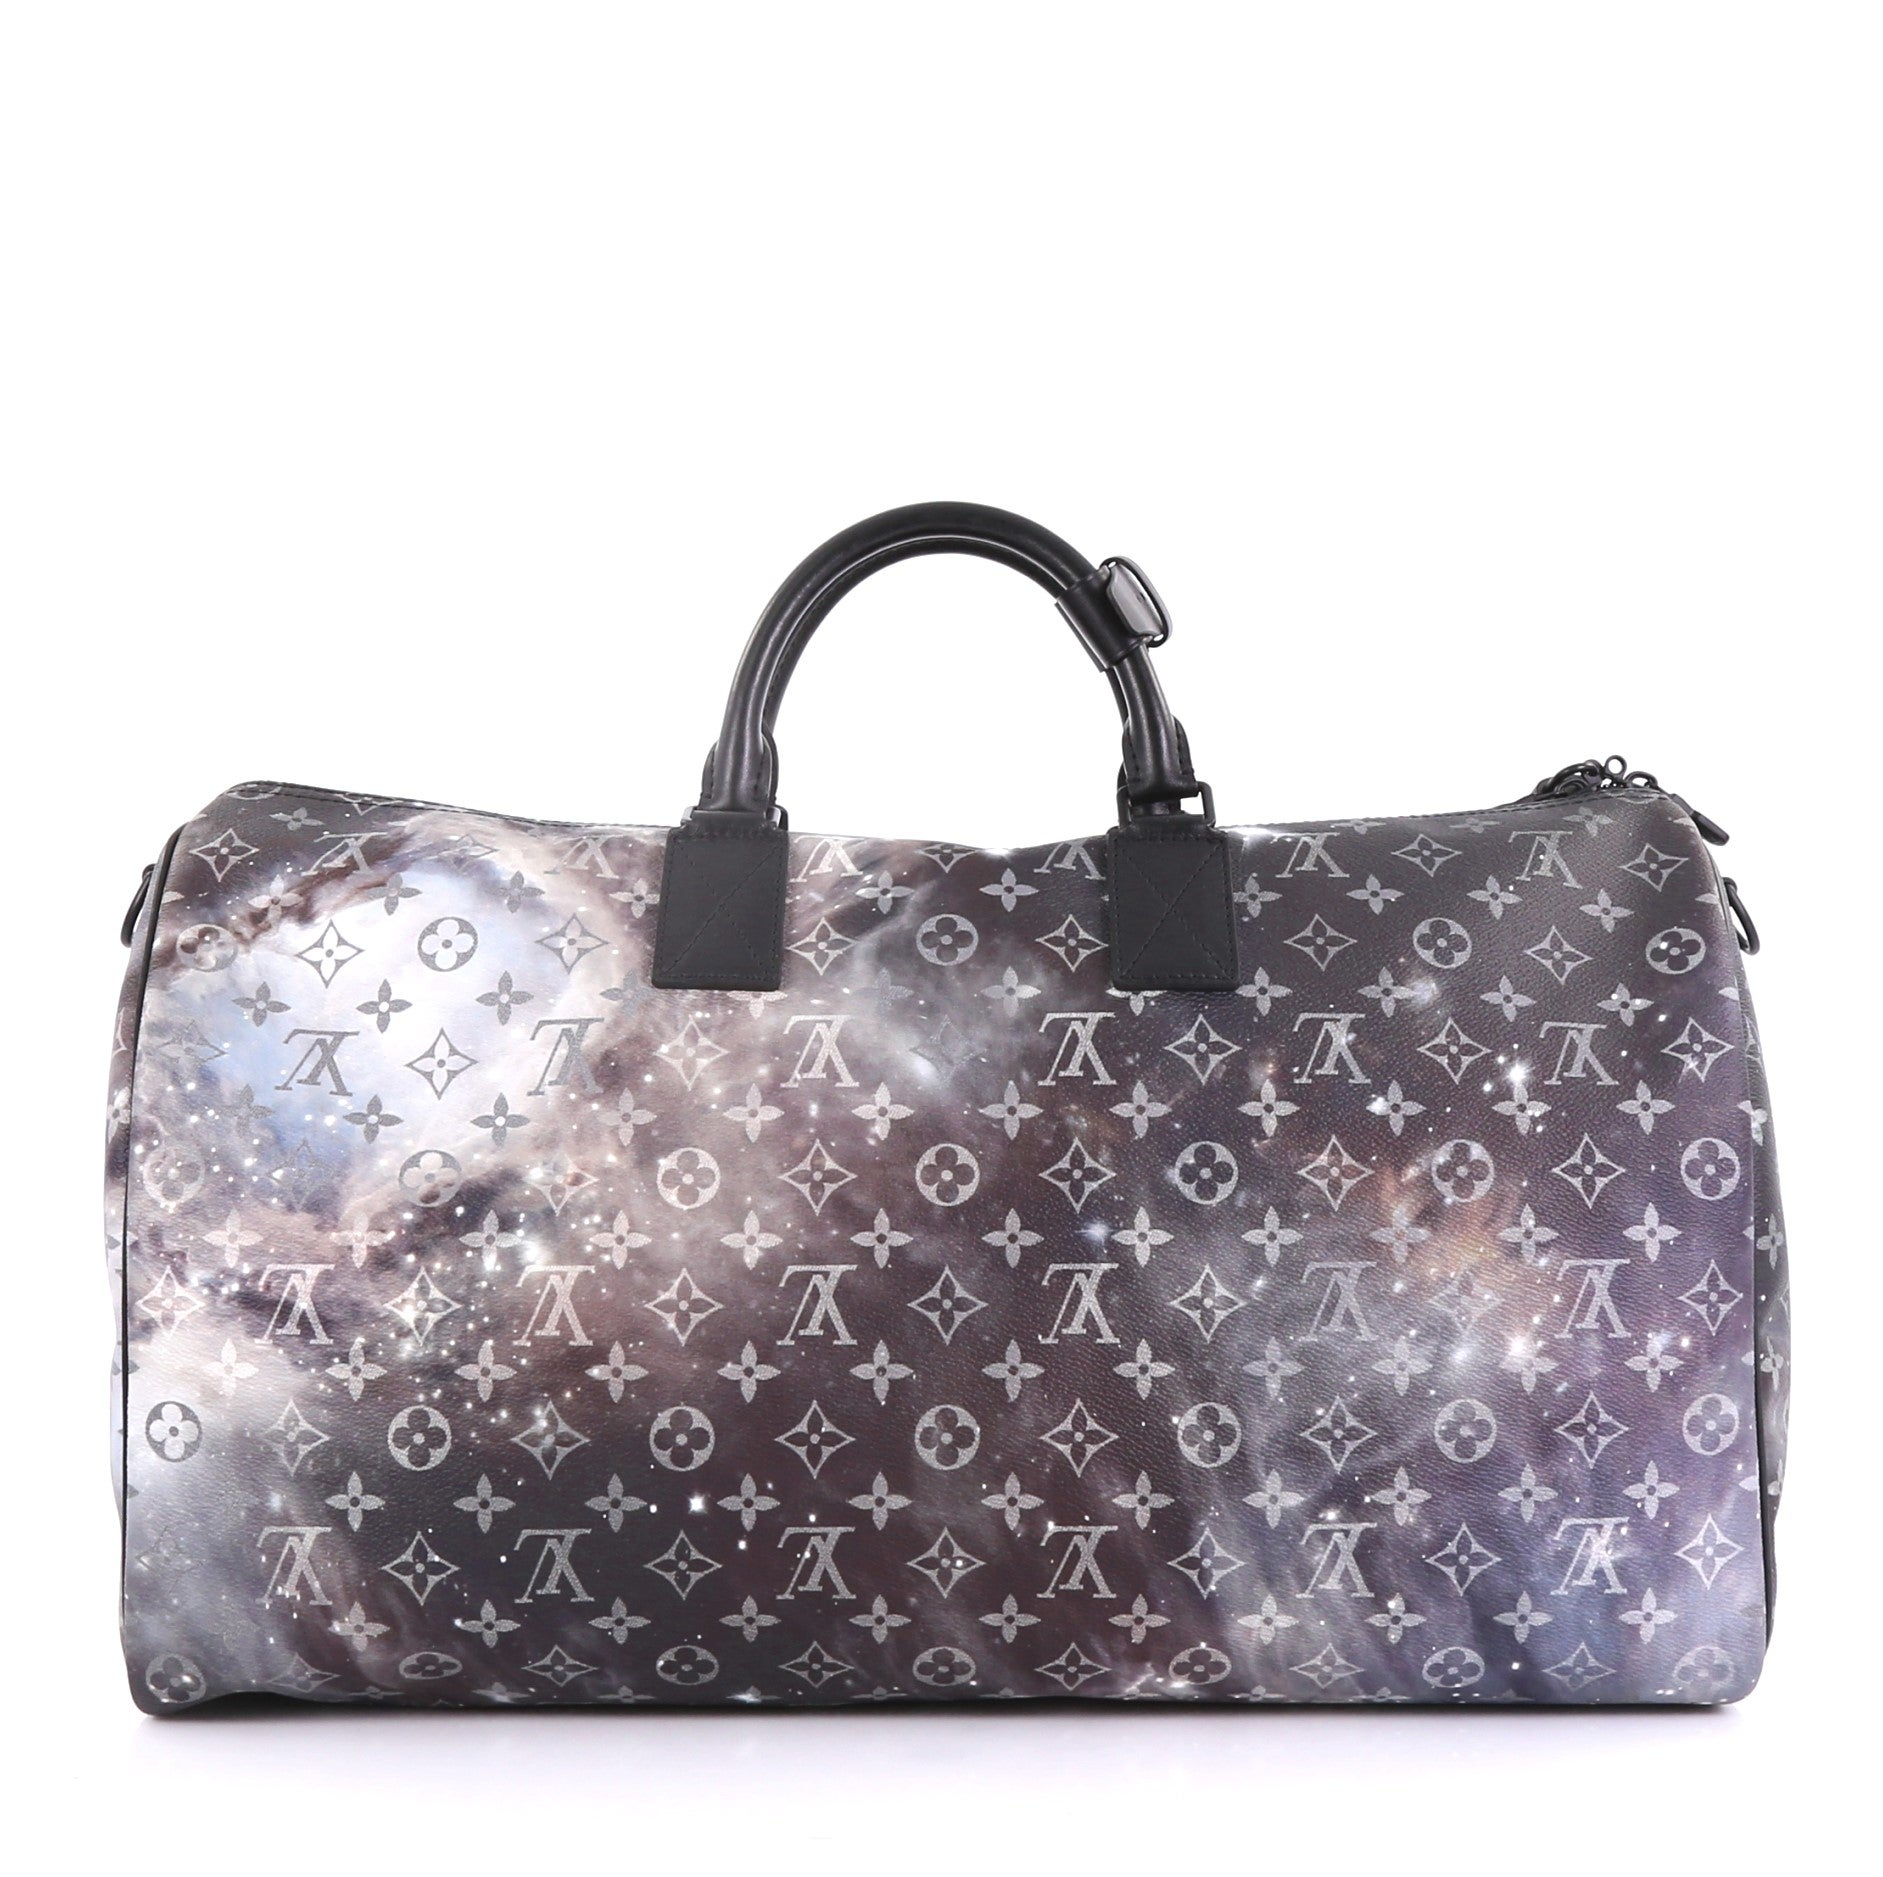 0b6c89ee3380 Louis Vuitton Keepall Bandouliere Bag Limited Edition Monogram Galaxy Canvas  50 For Sale at 1stdibs